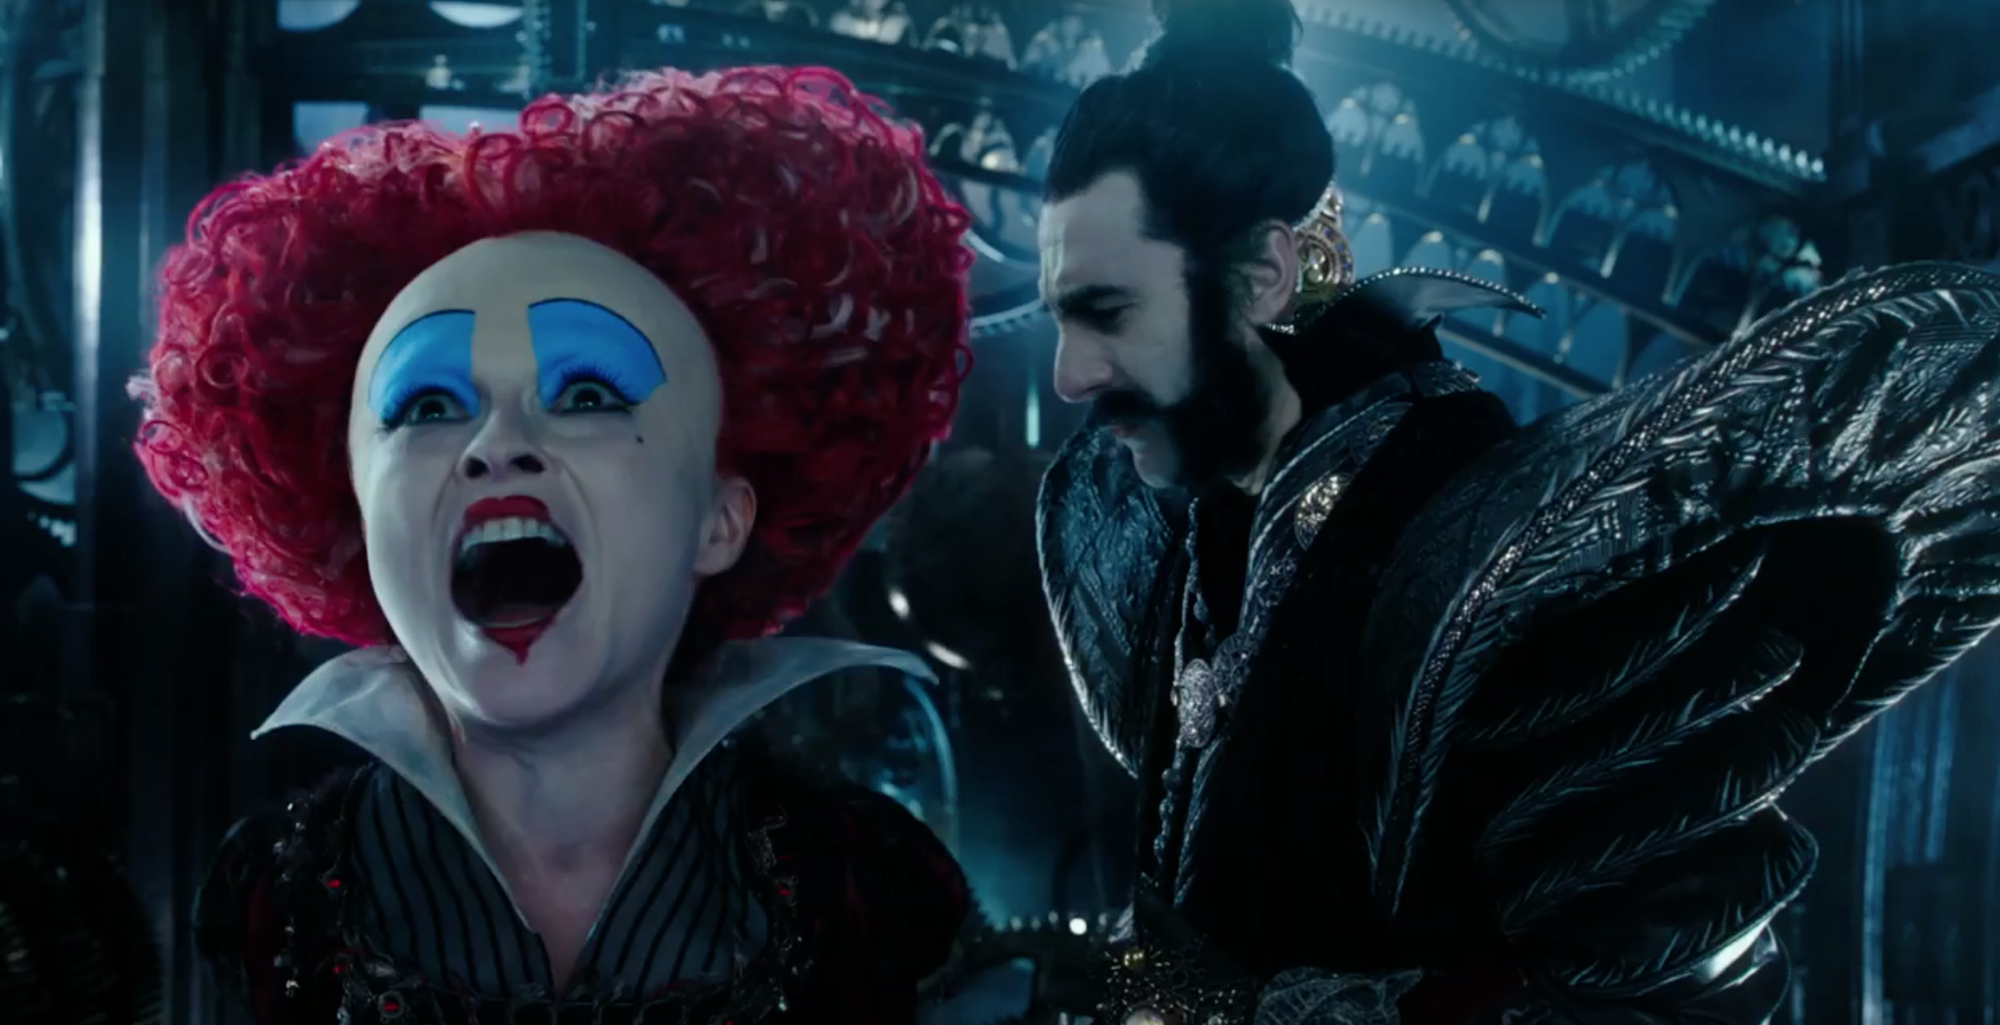 Watch New Alice Through The Looking Glass Trailer Anglophenia